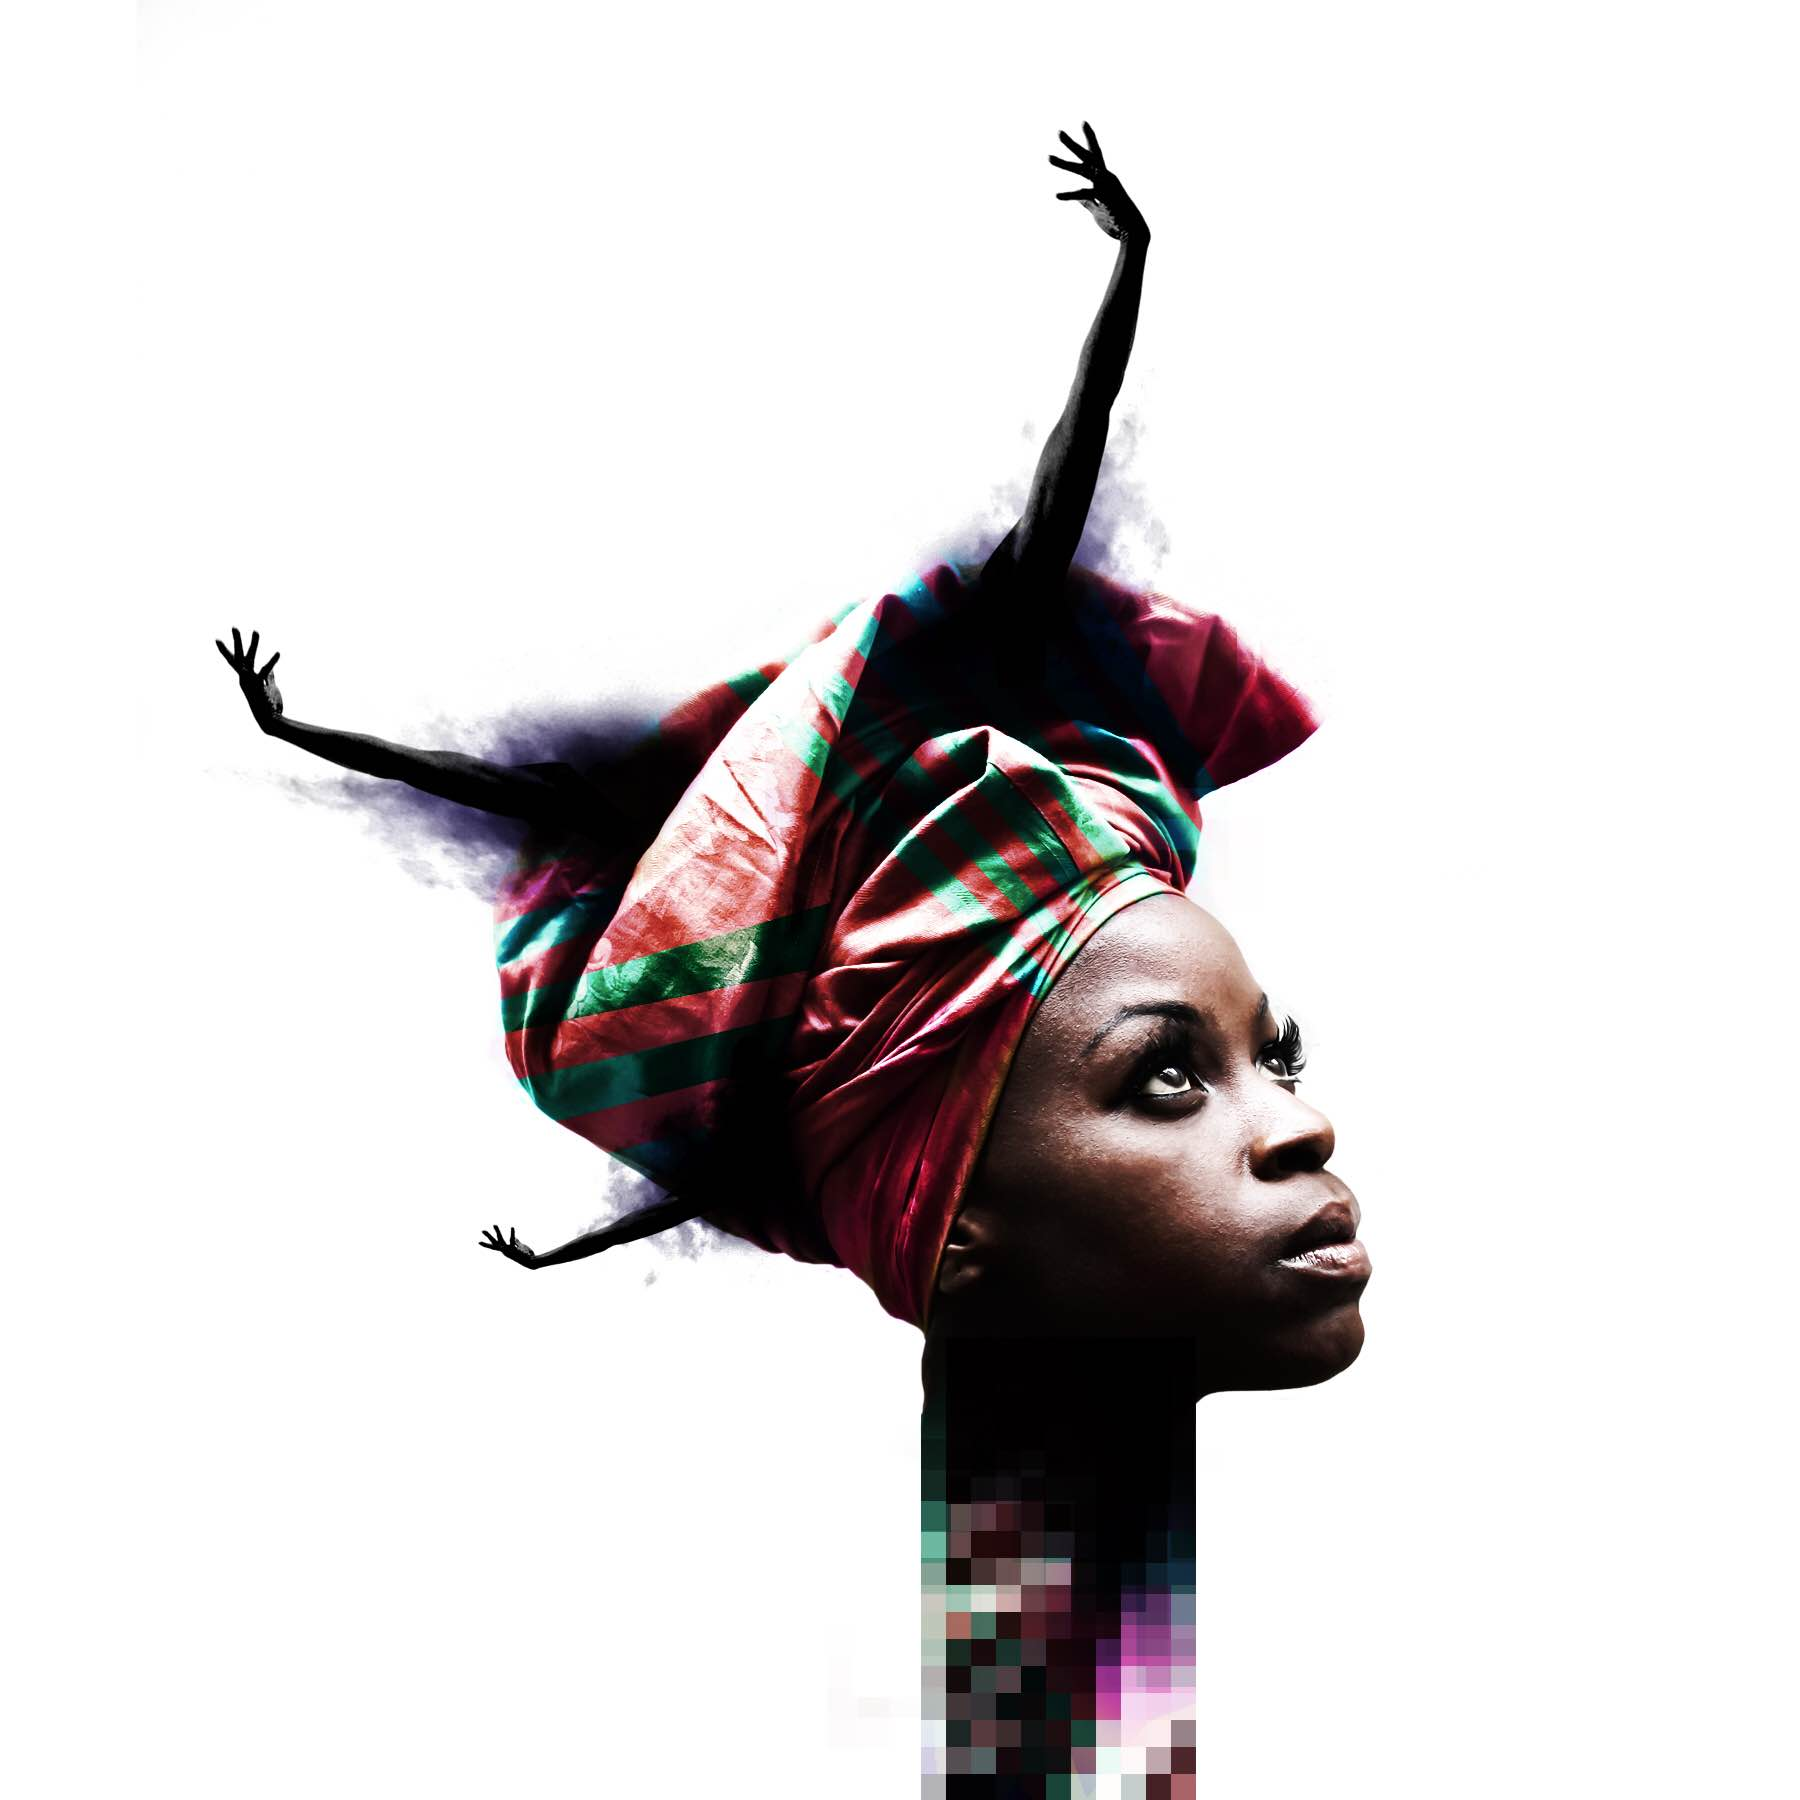 African Woman's head, covered with a scarf that has 3 arms sticking out it